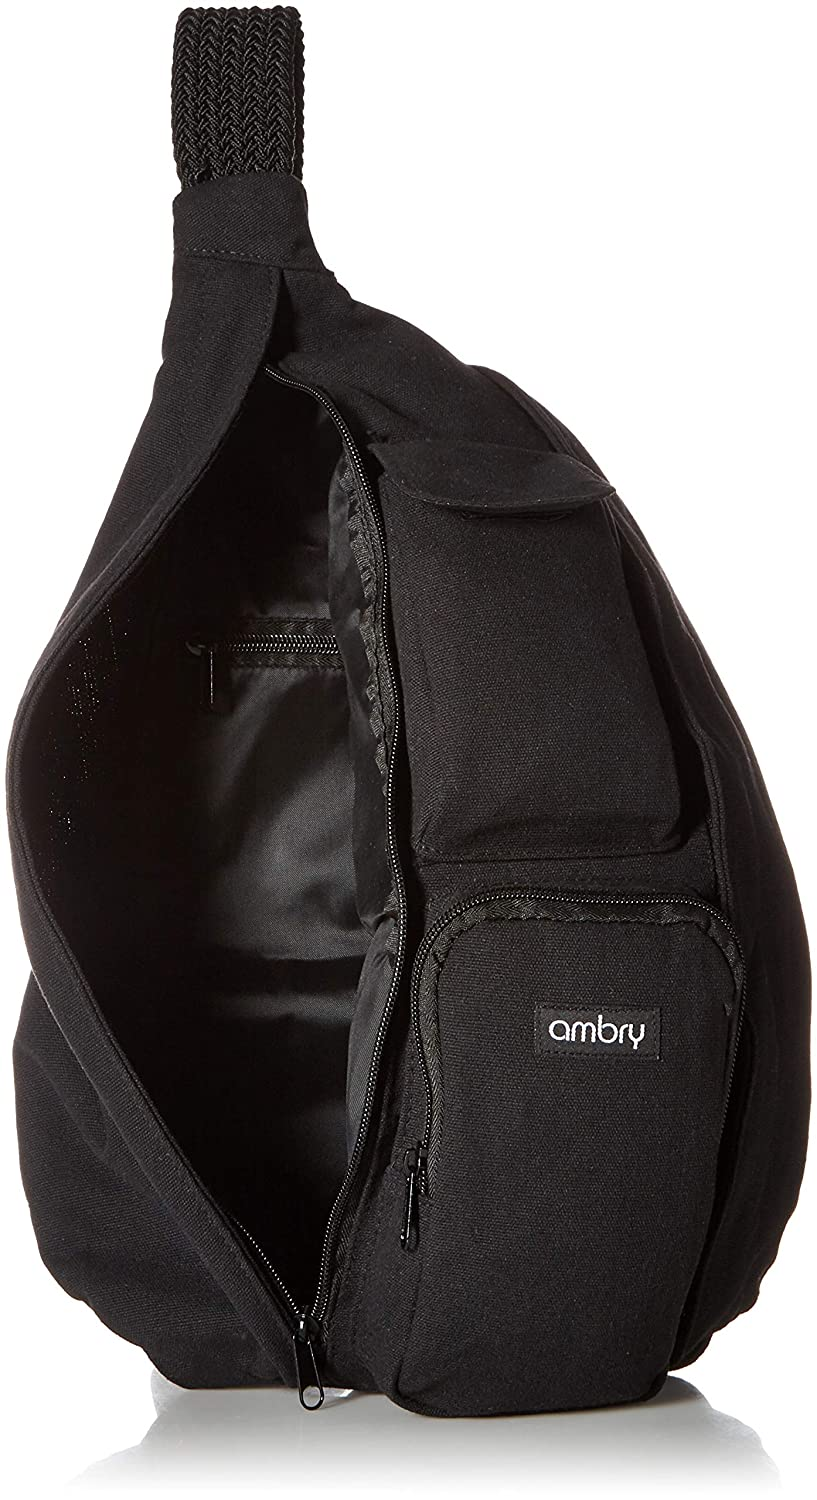 ce570663a0 Amazon.com  Ambry Rope Sling Bag - Canvas with Adjustable Shoulder Strap -  Compact Backpack for Women That Carries All Your Important Gear for Hiking